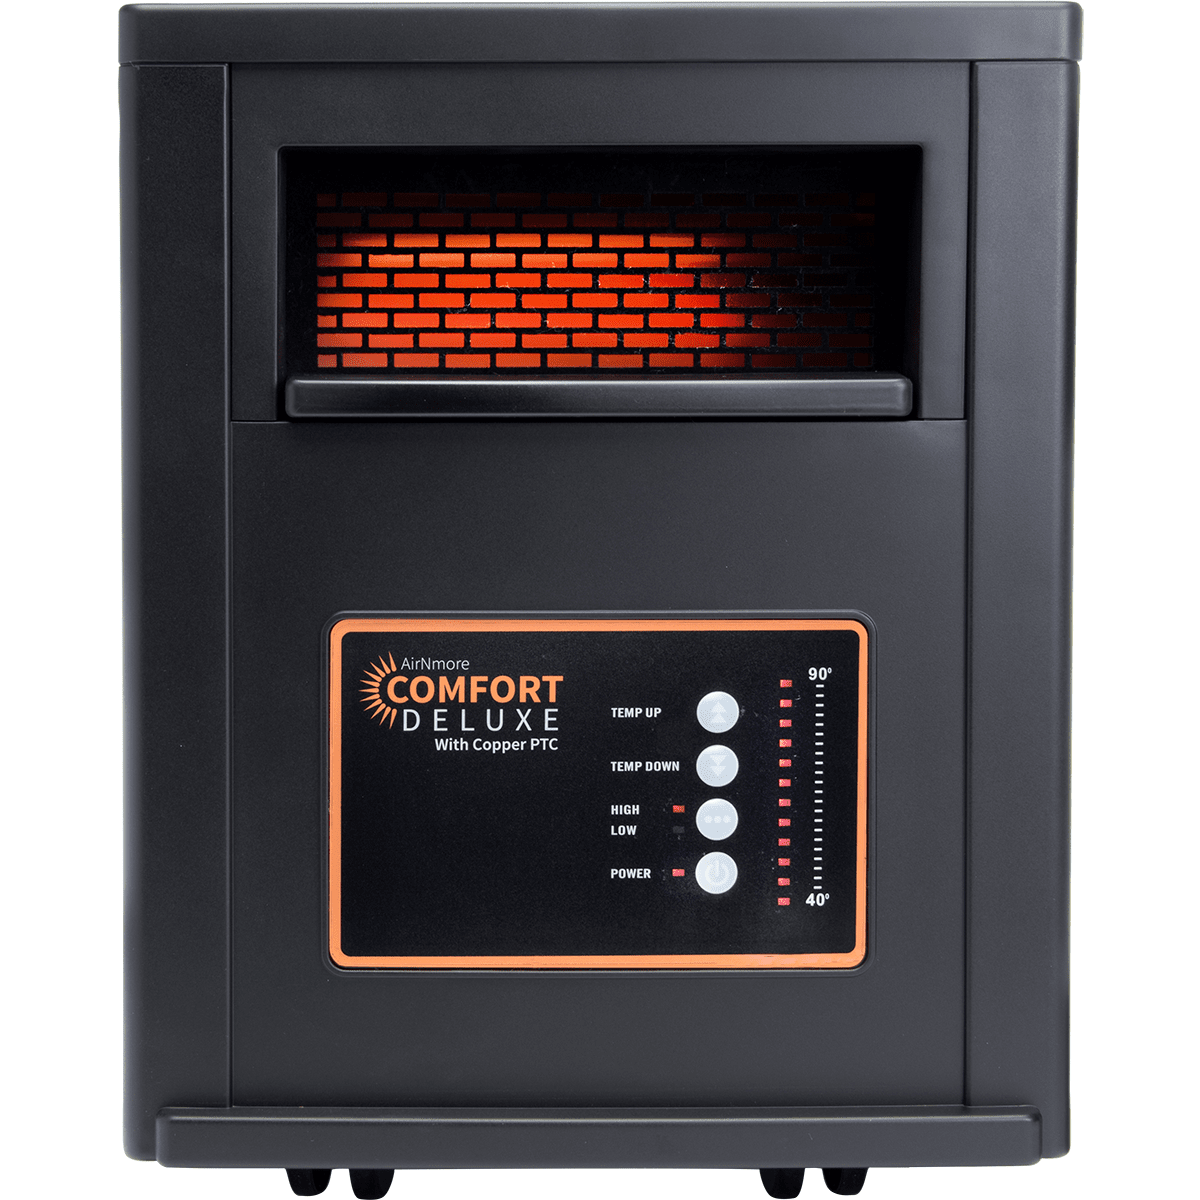 Image of Airnmore Comfort Deluxe Infrared Space Heater